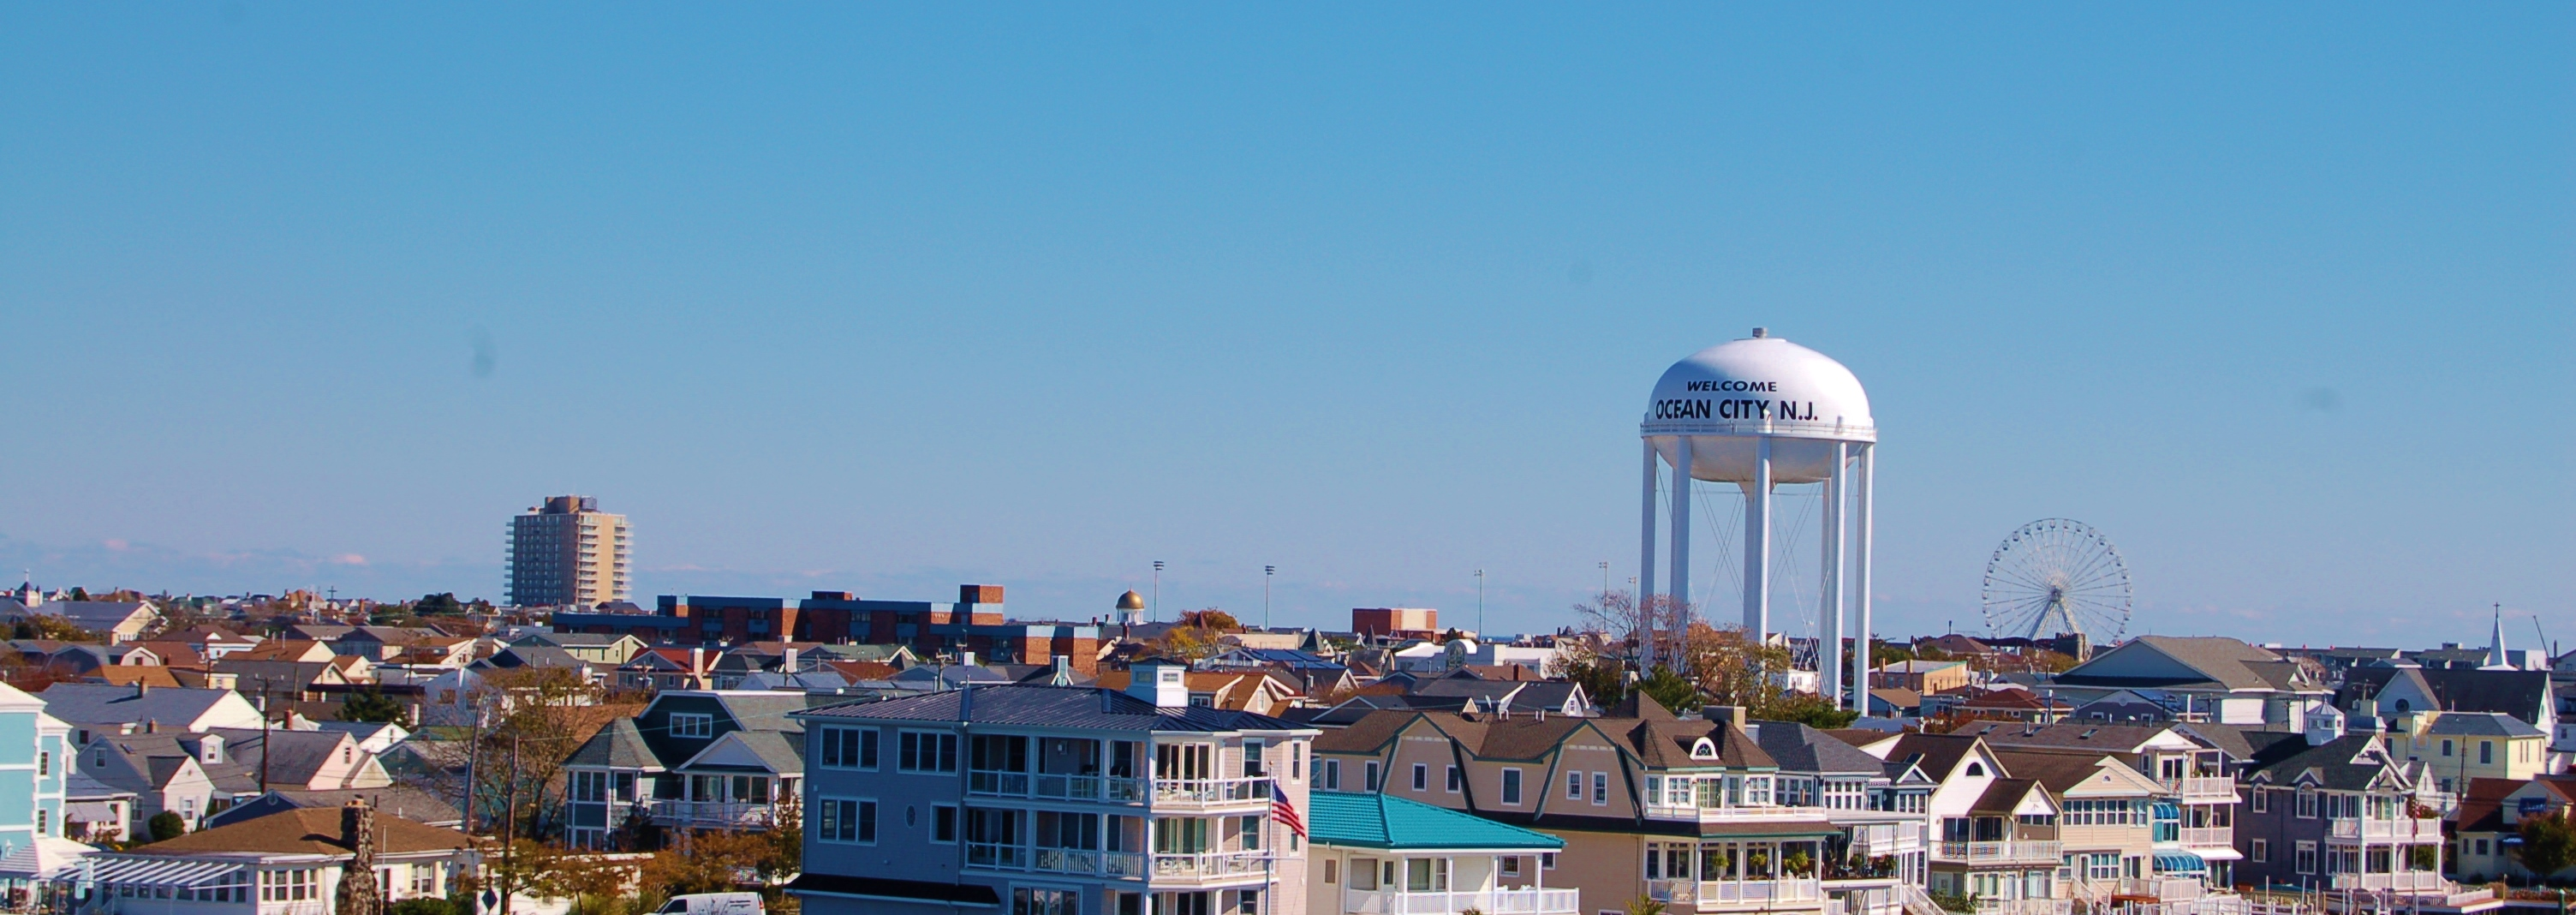 10 Reasons Ocean City Should Be Your Next Travel Destination